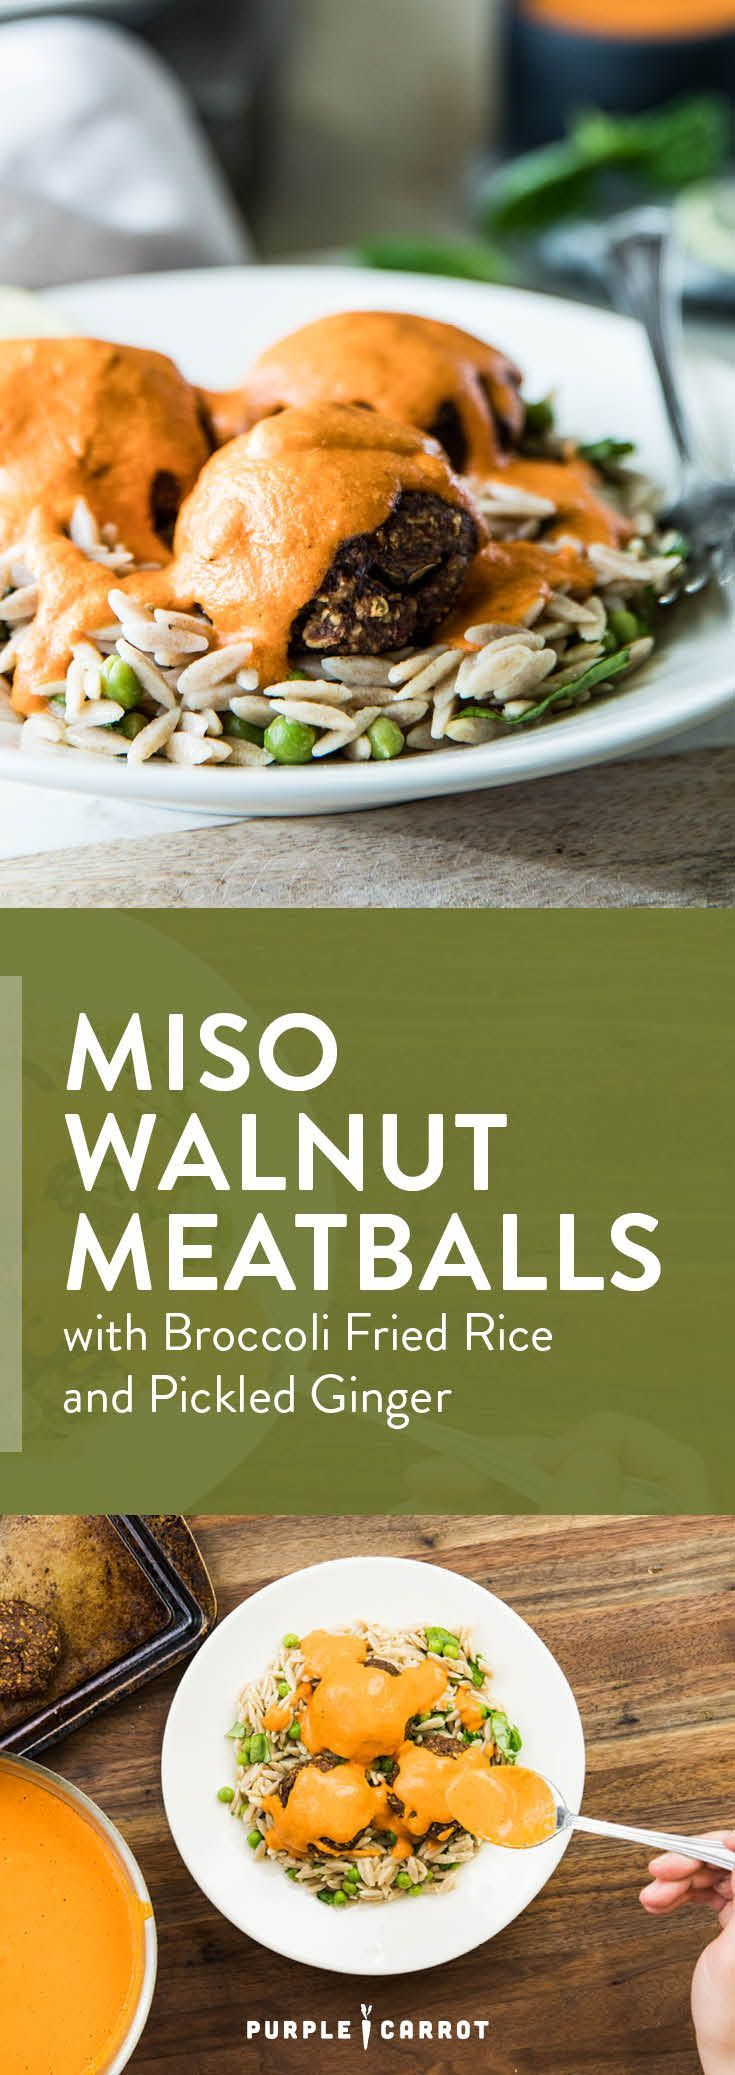 One of our favorite spins on meat-free meatballs. These Miso Walnut Meatballs with Broccoli Fried Rice and Pickled Ginger are the perfect guilt-free dinner for any night of the week. [#vegan #healthy #dairyfree] | Purple Carrot